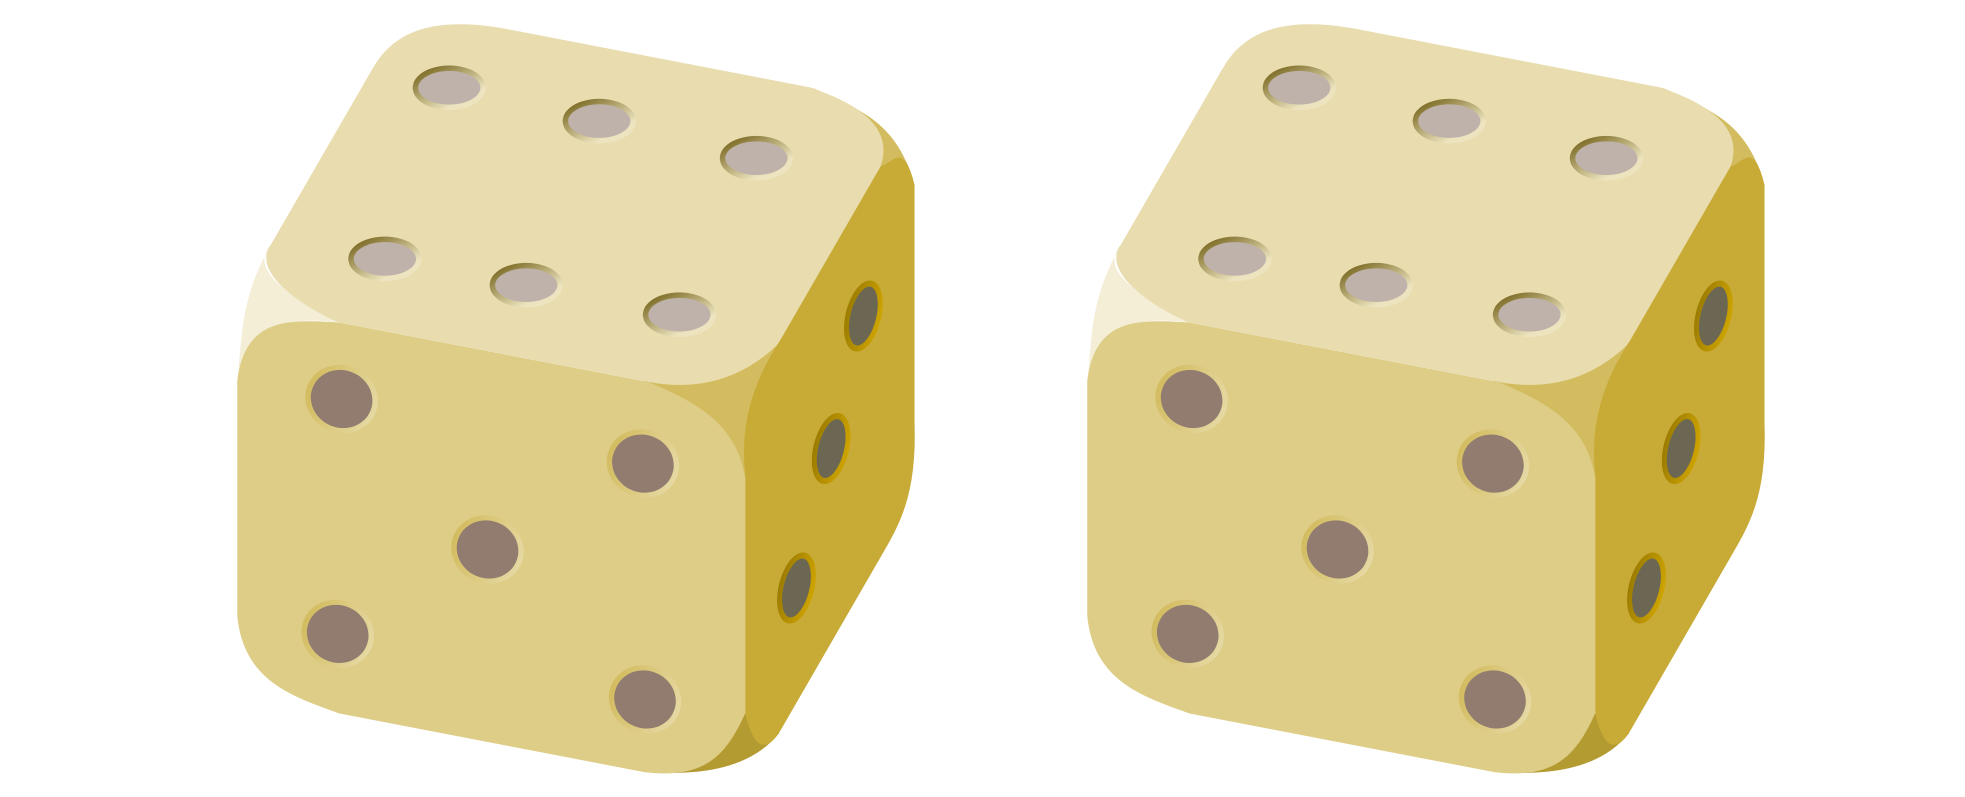 jpg freeuse d20 clipart game dice #77900385